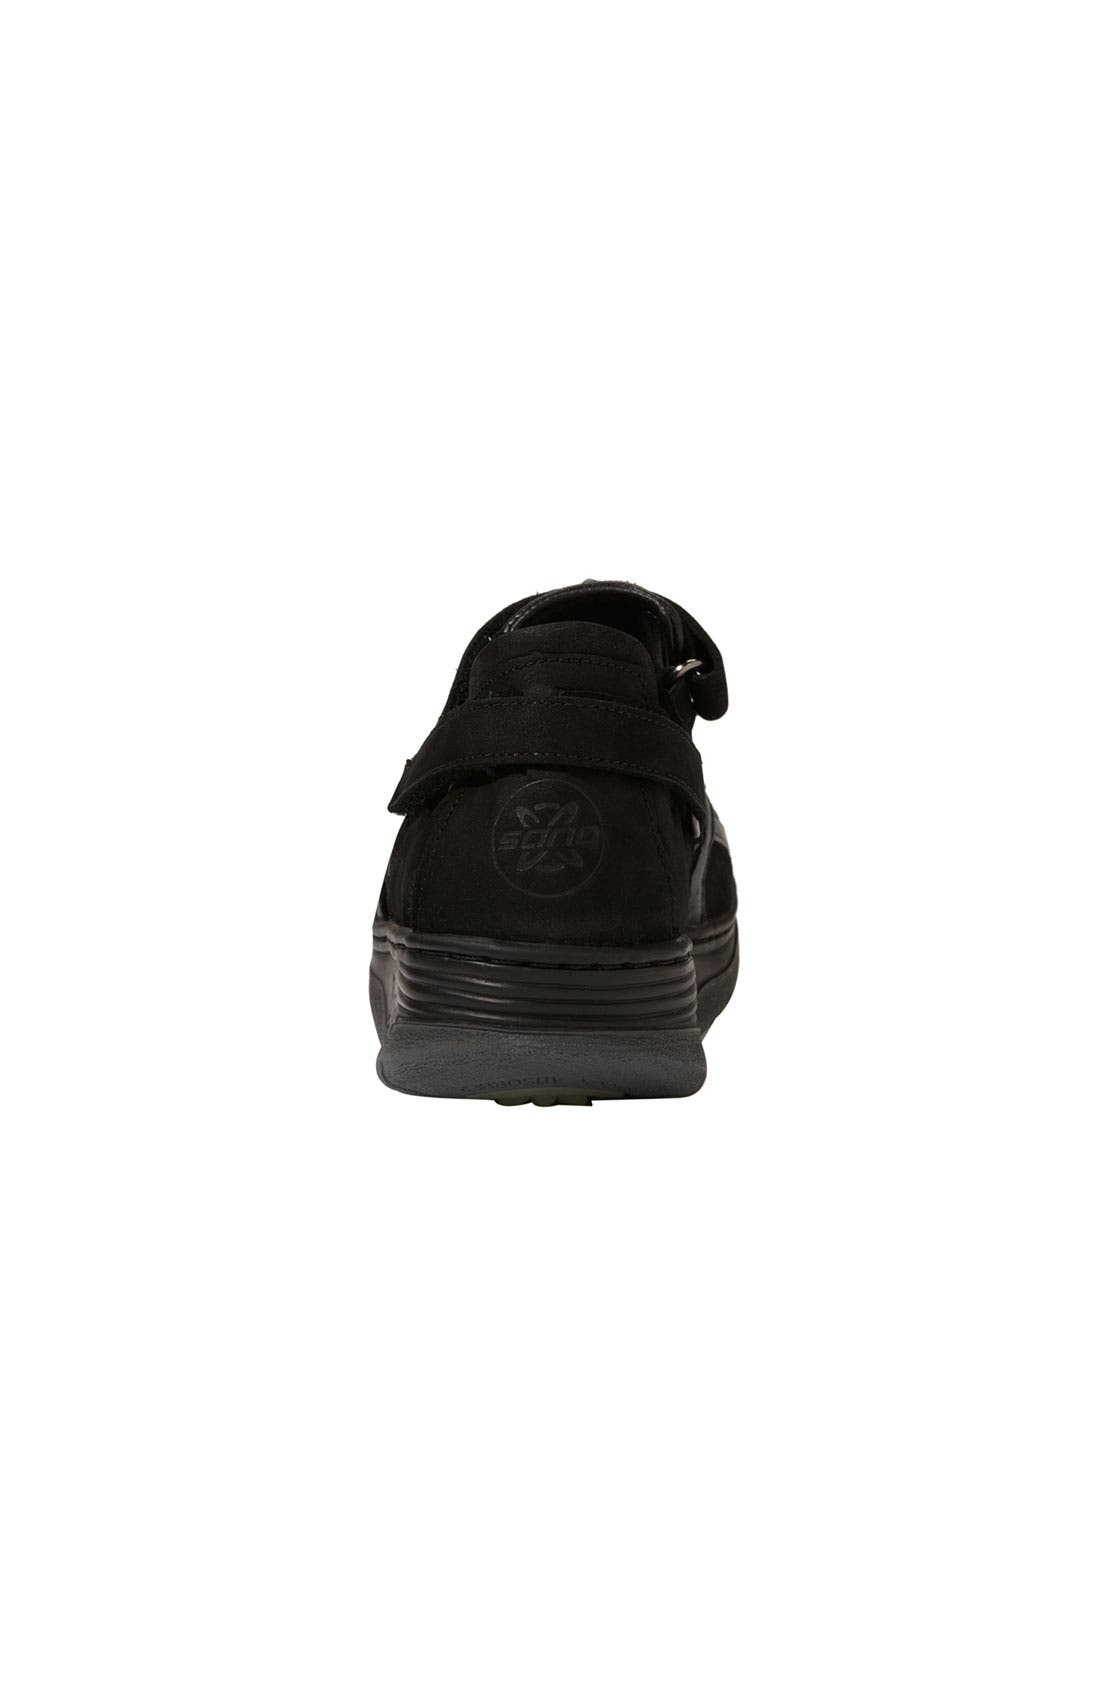 Sano by Mephisto 'Excess' Walking Shoe,                             Alternate thumbnail 6, color,